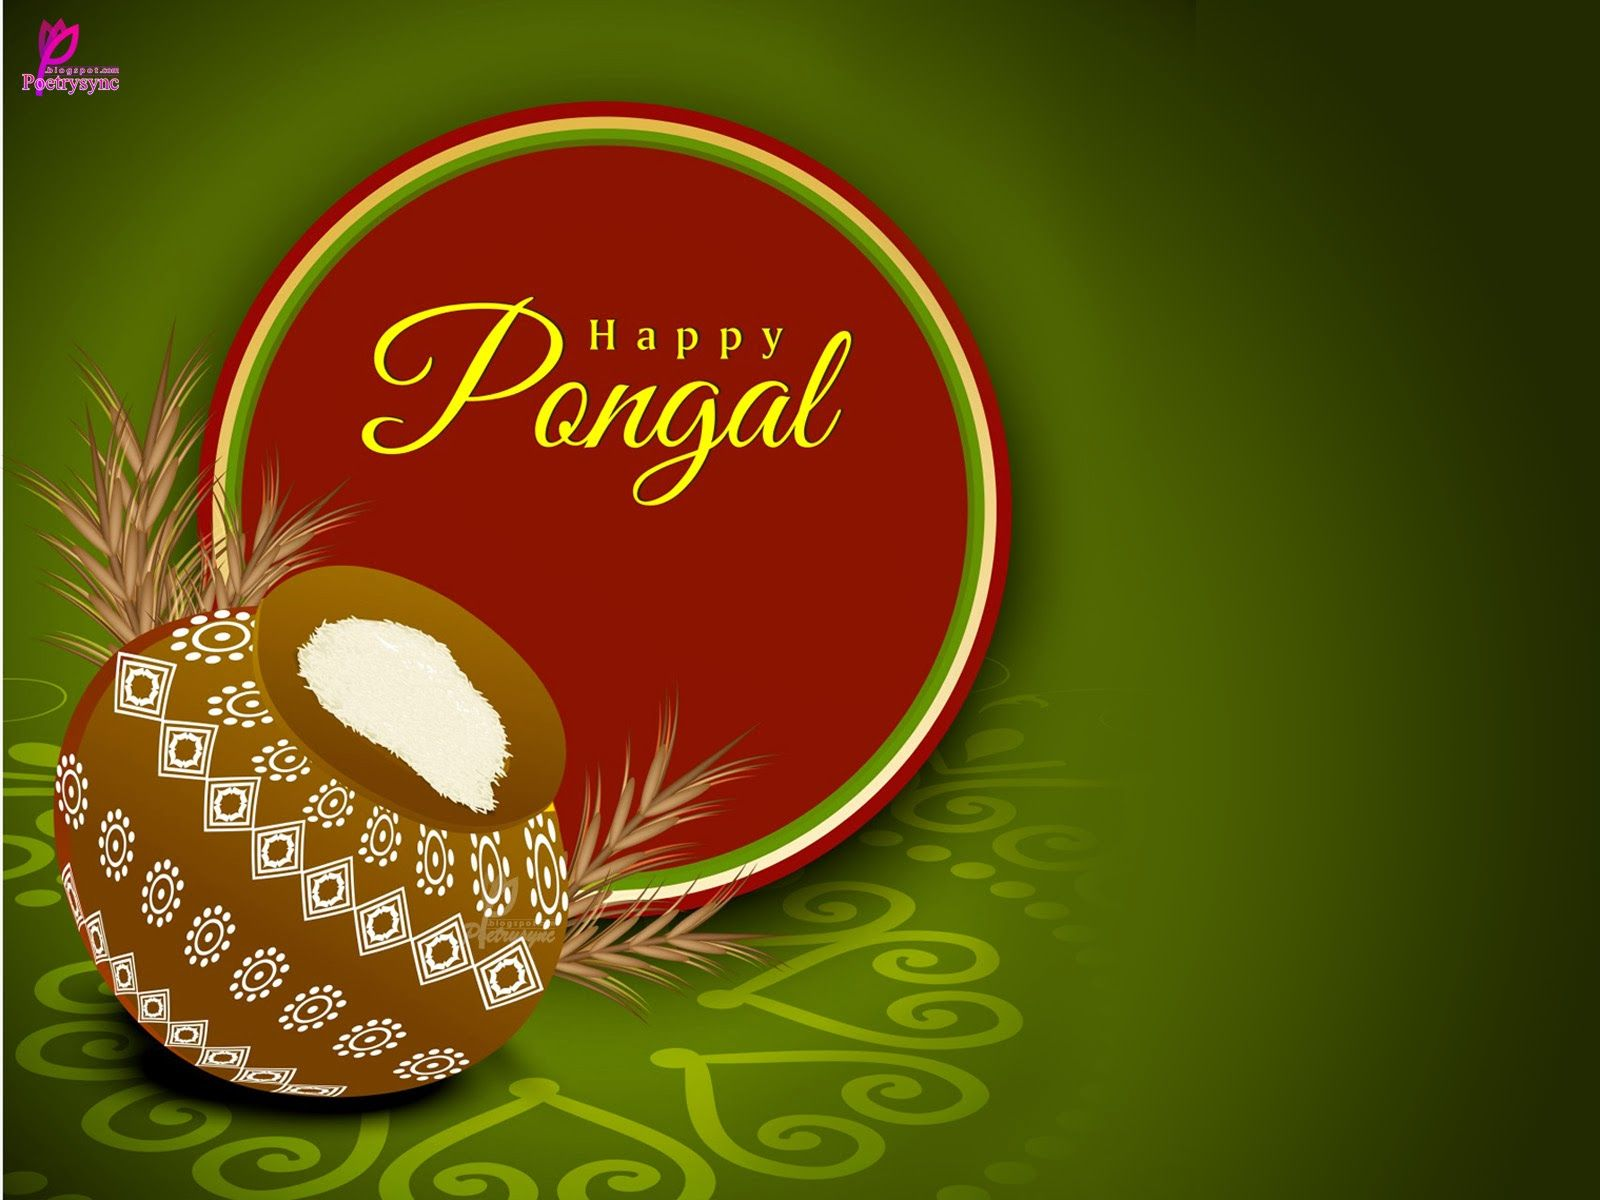 Happy Pongal Festival Wishes Card Wallpaper In South India Pongal